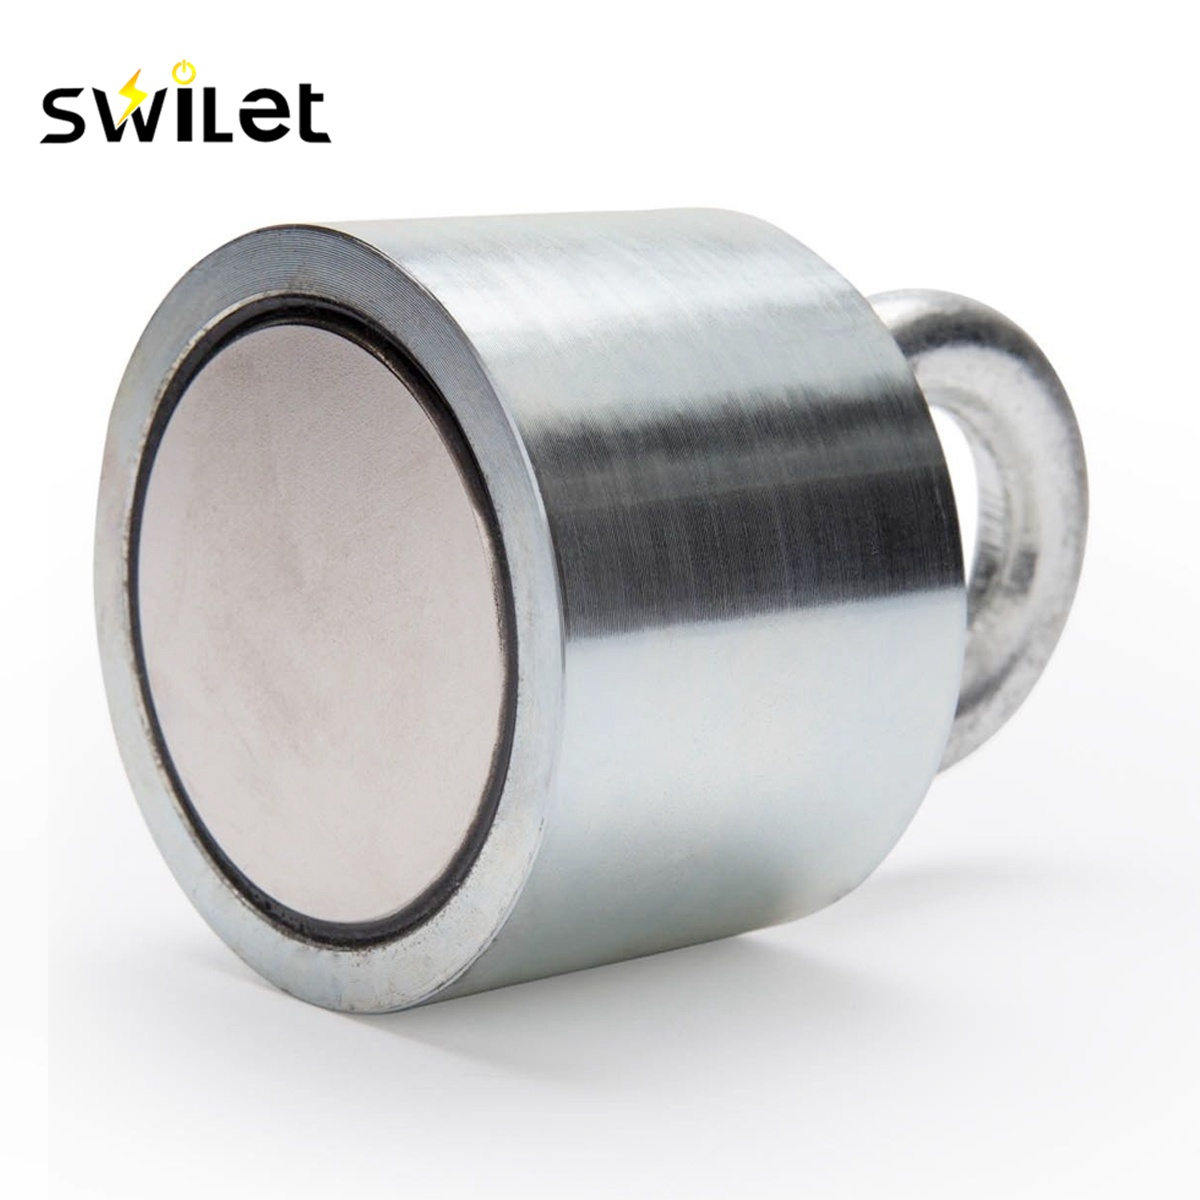 SWILET 1PCS 55x40mm 30kg Neodymium Recovery Magnet Metal Detector with Handle Ringscrew High Quality PowerfulSWILET 1PCS 55x40mm 30kg Neodymium Recovery Magnet Metal Detector with Handle Ringscrew High Quality Powerful